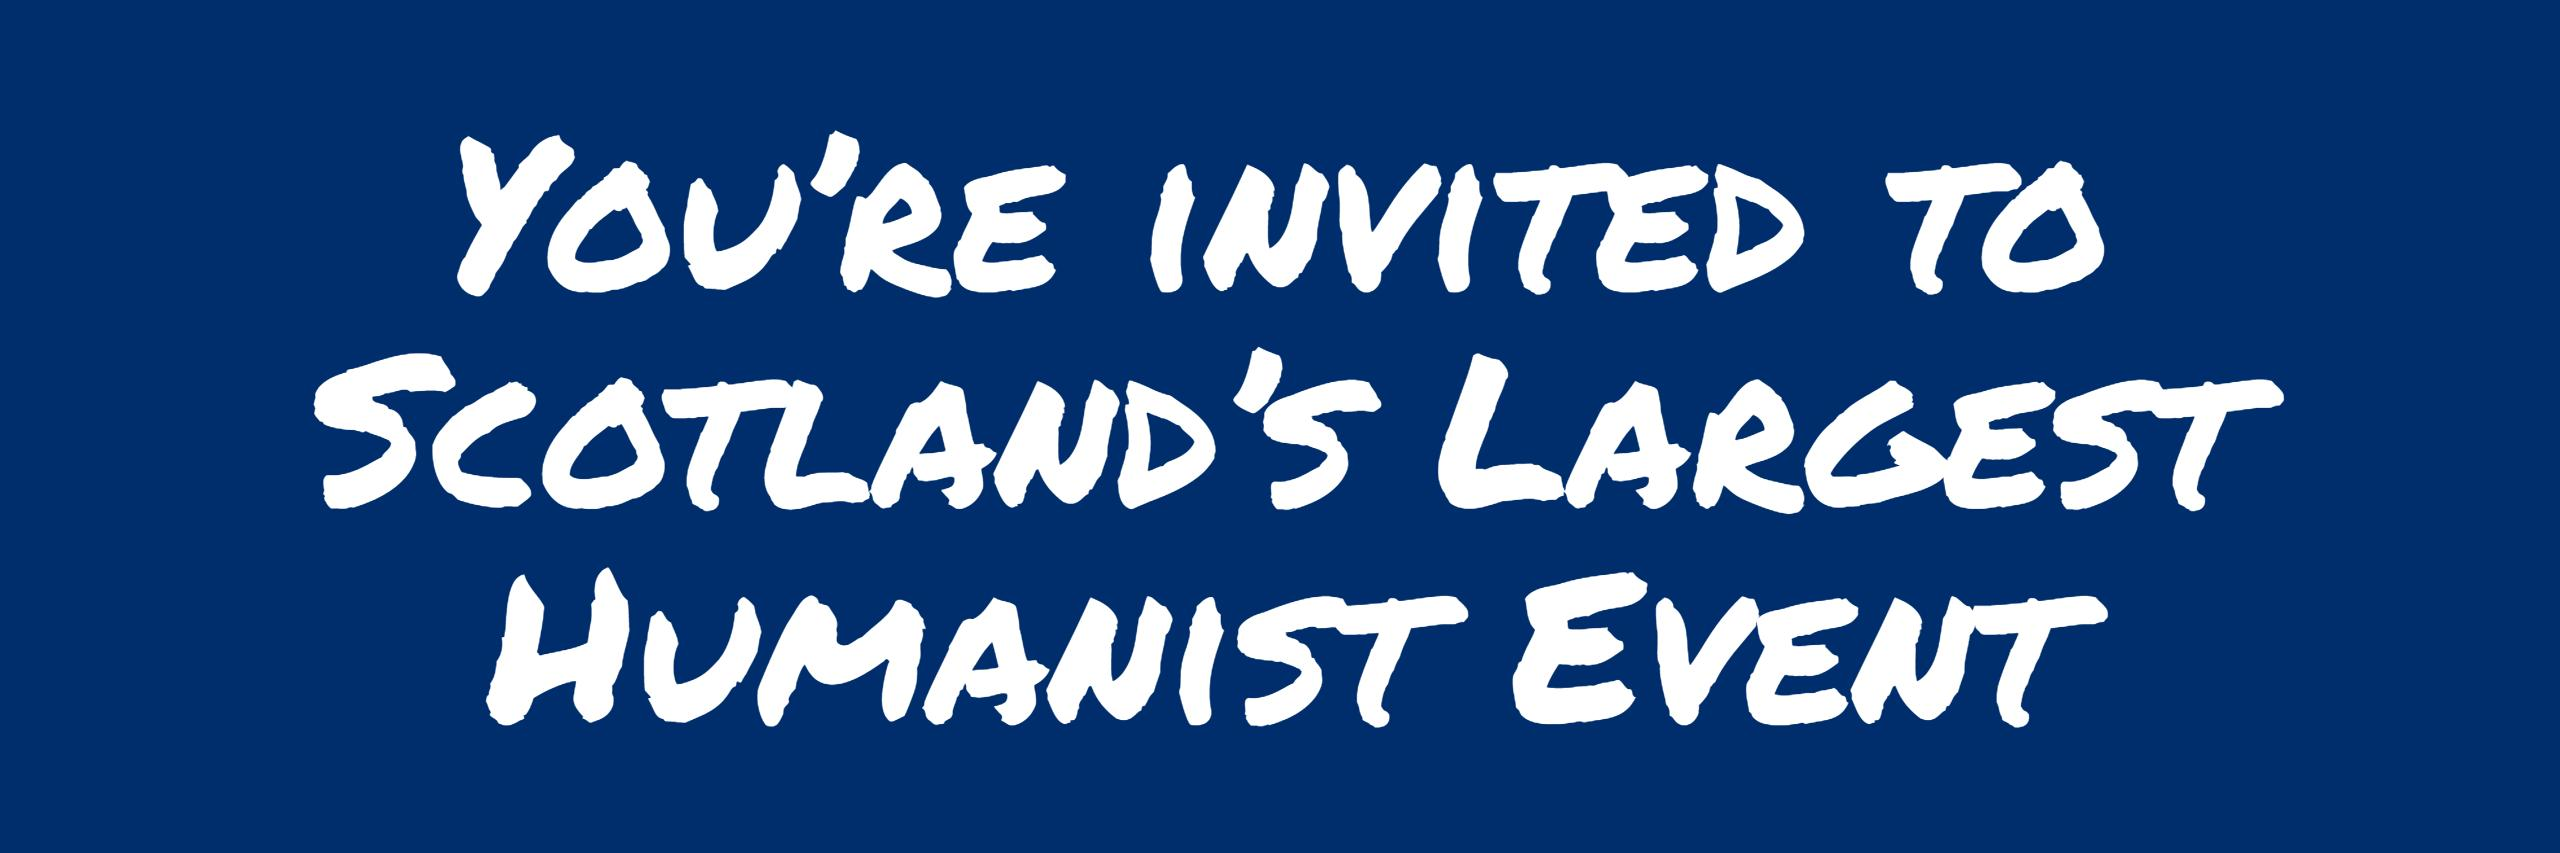 You're invited to Scotland's largest Humanist event